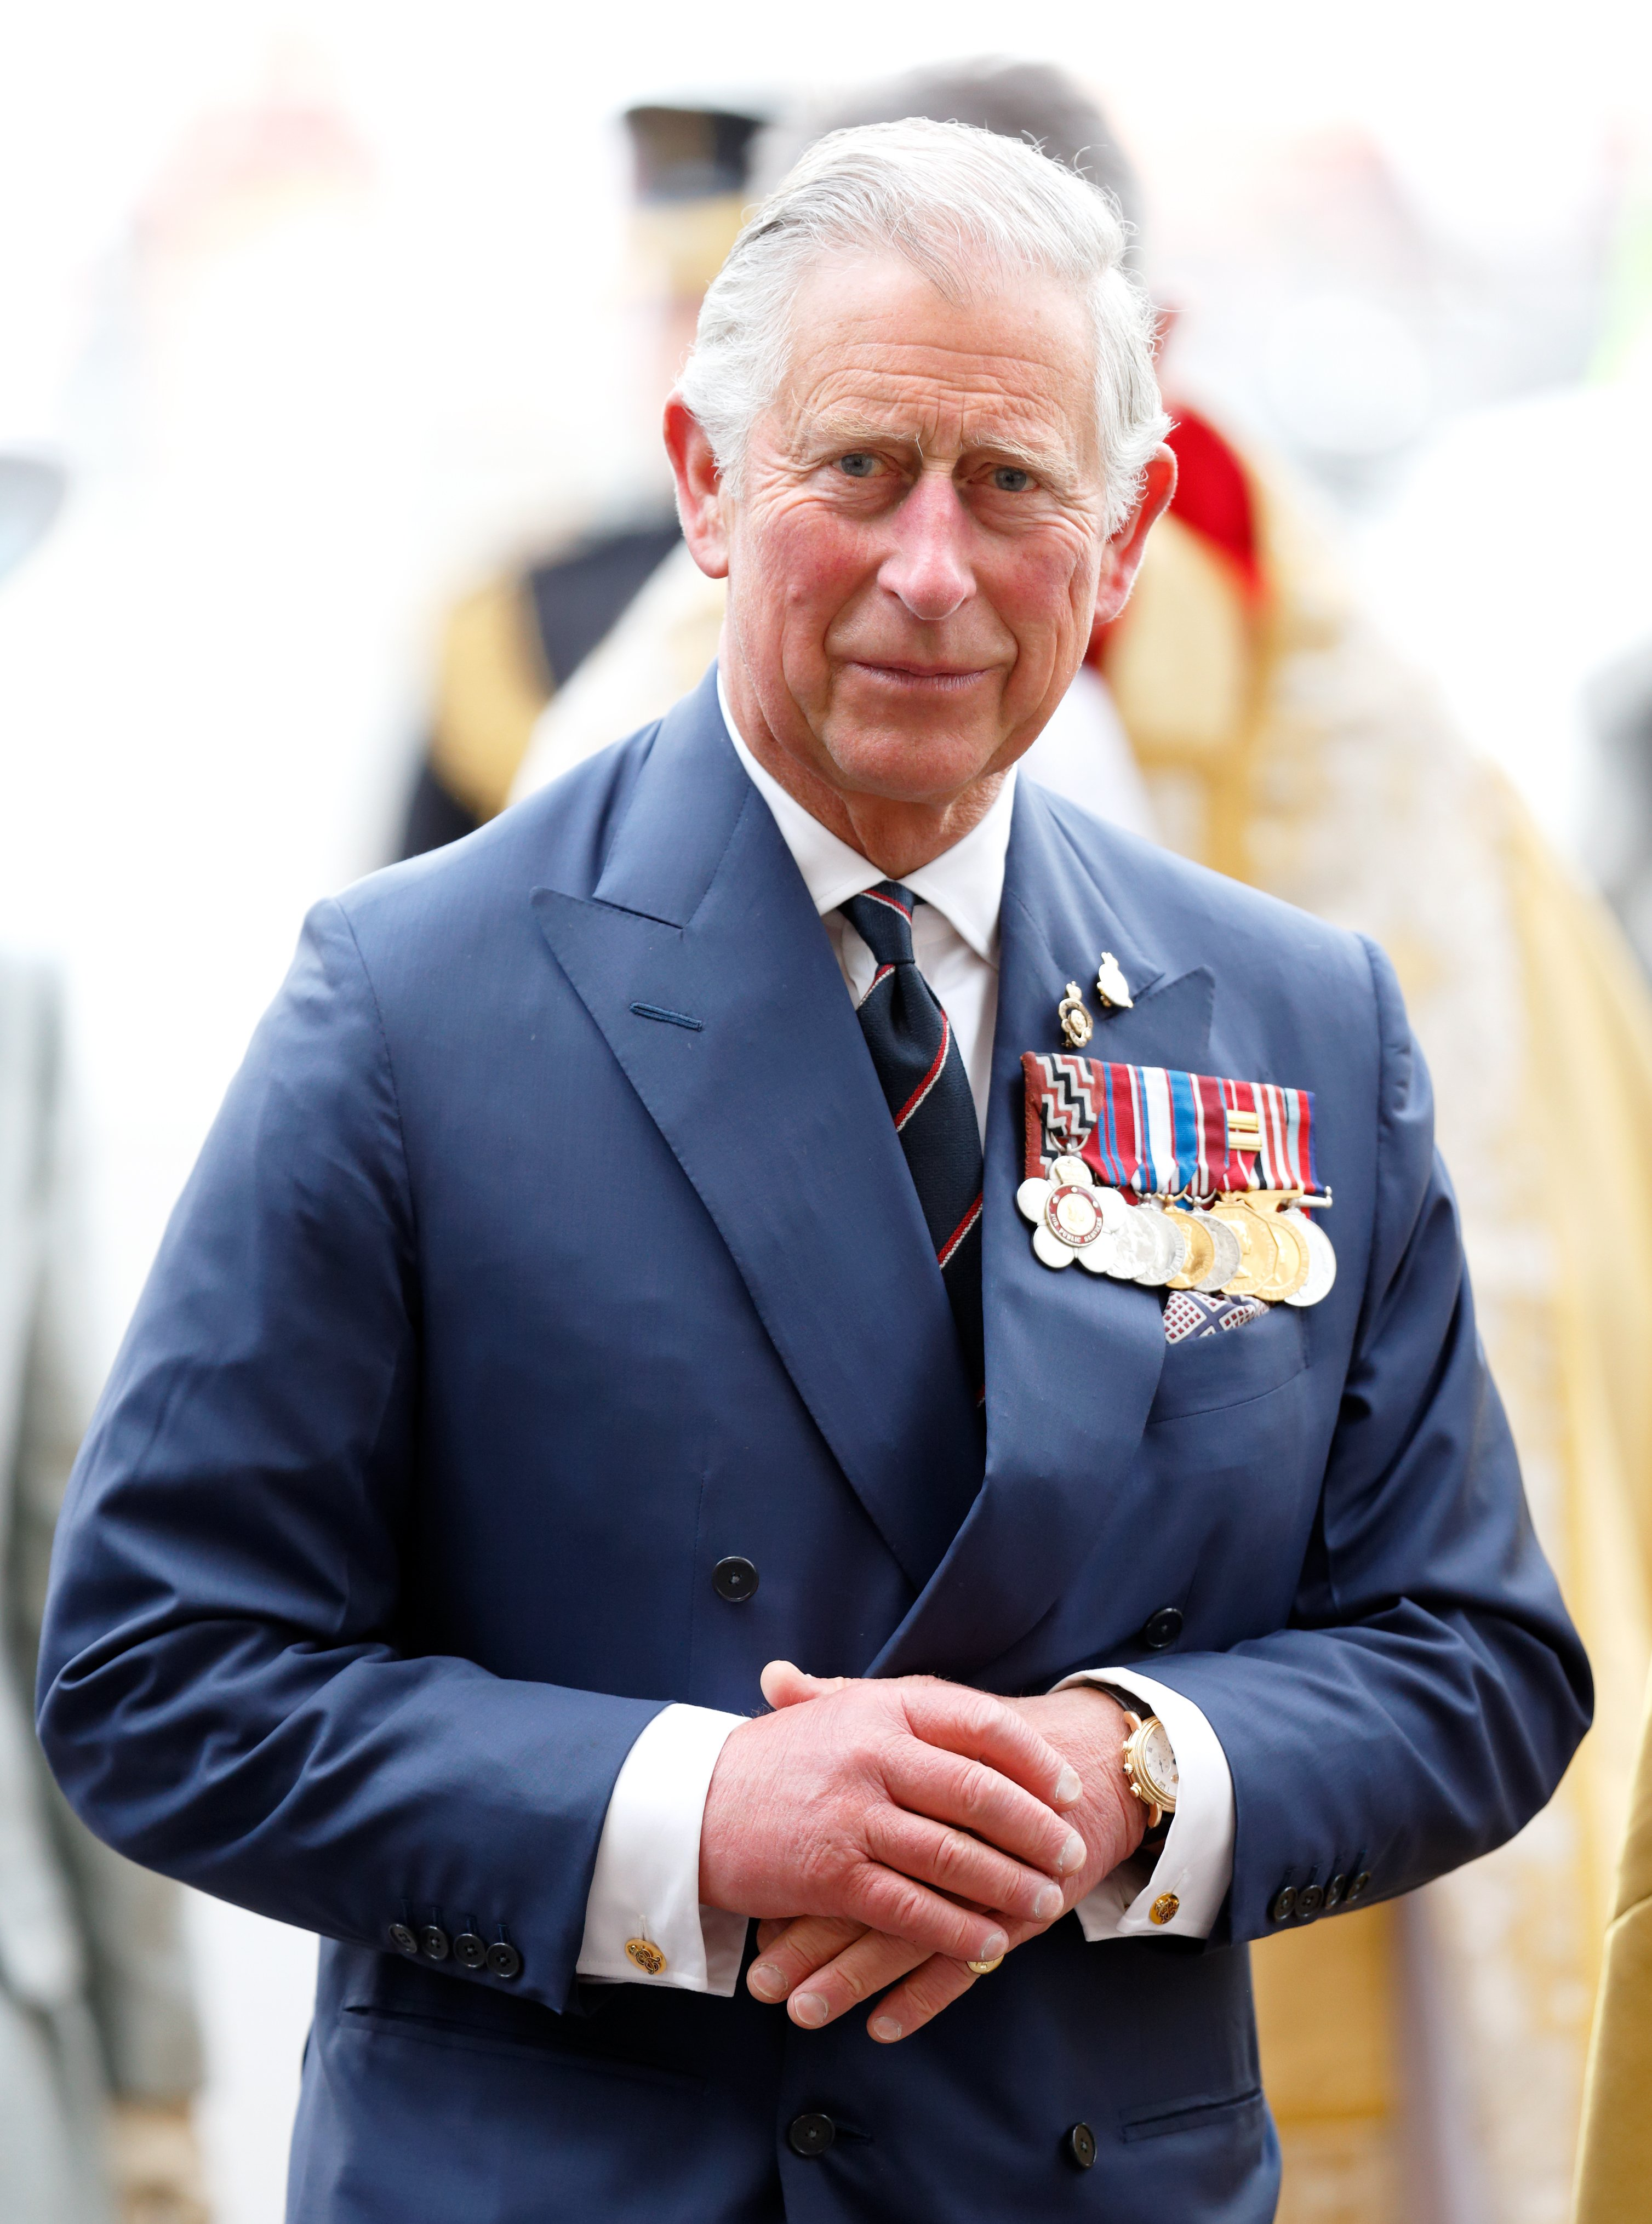 Prince Charles pictured at a Service of Thanksgiving to mark the 70th Anniversary of VE Day at Westminster Abbey, 2015, London, England.   Photo: Getty Images